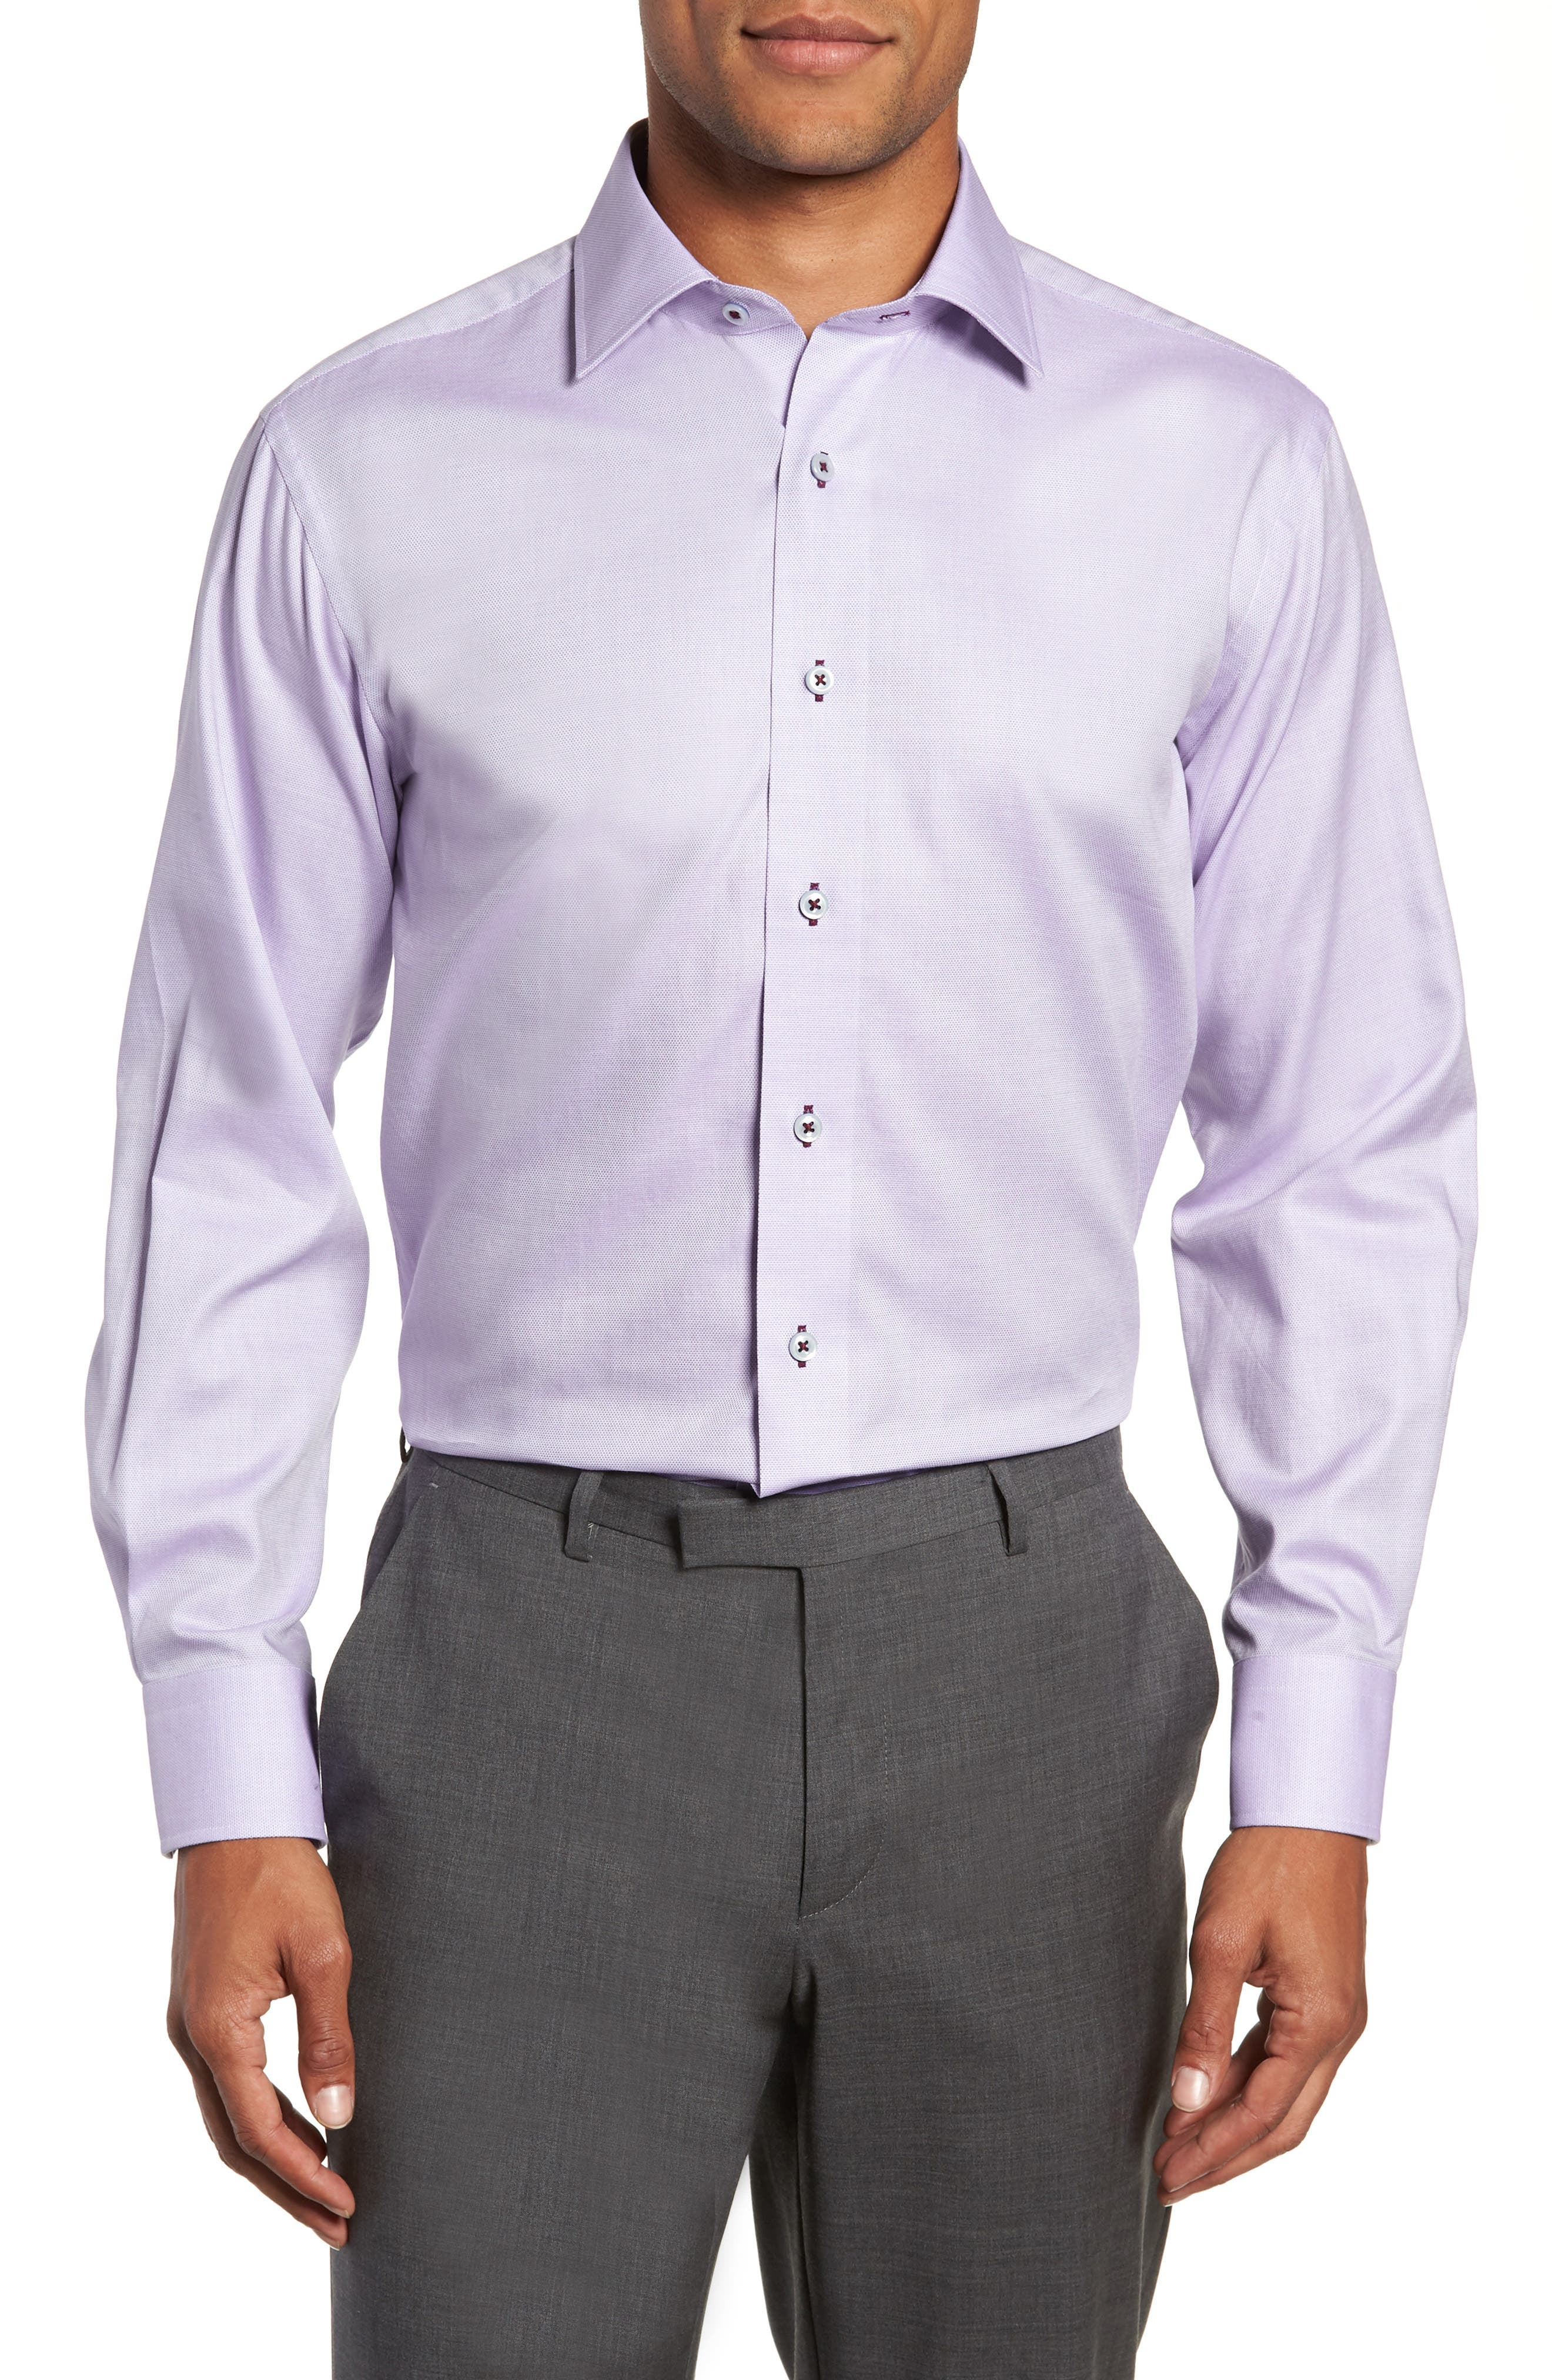 Trim Fit Solid Dress Shirt,                             Main thumbnail 1, color,                             530